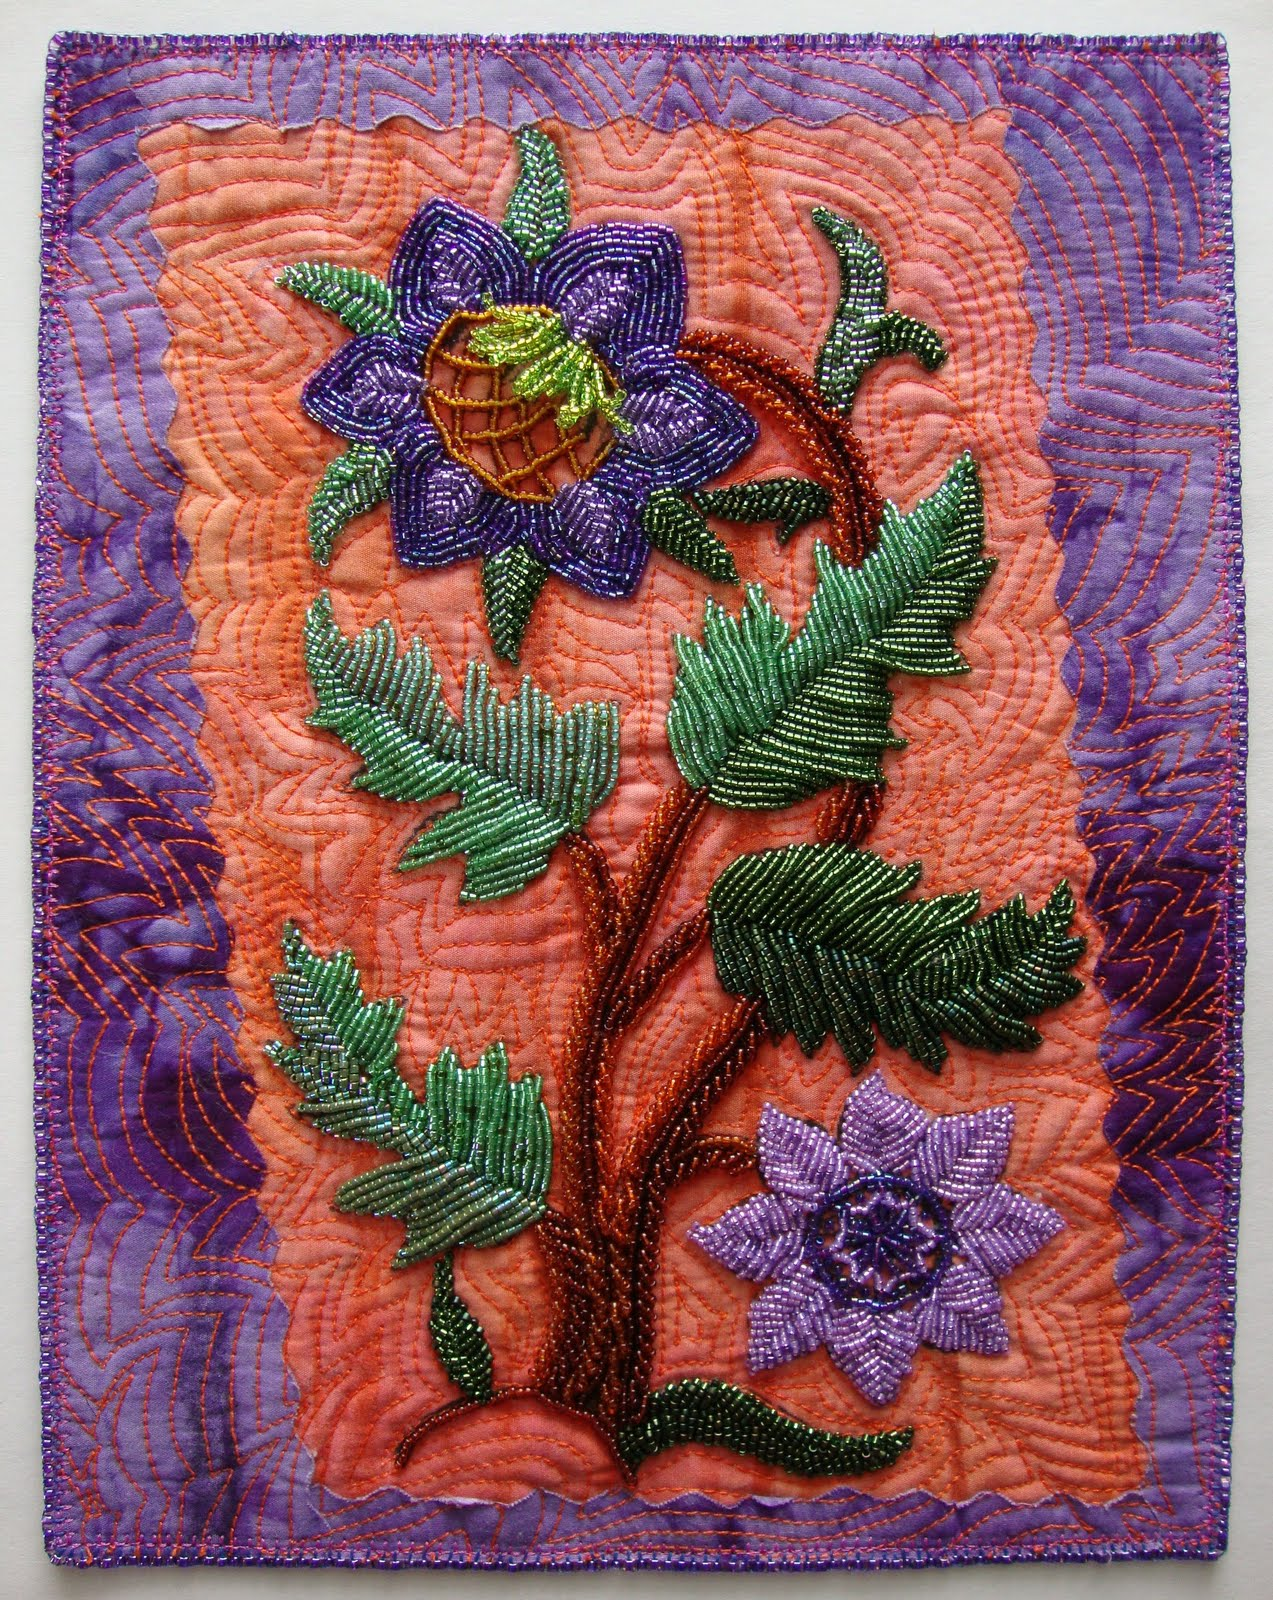 Beading arts bead embroidery artists from the archives